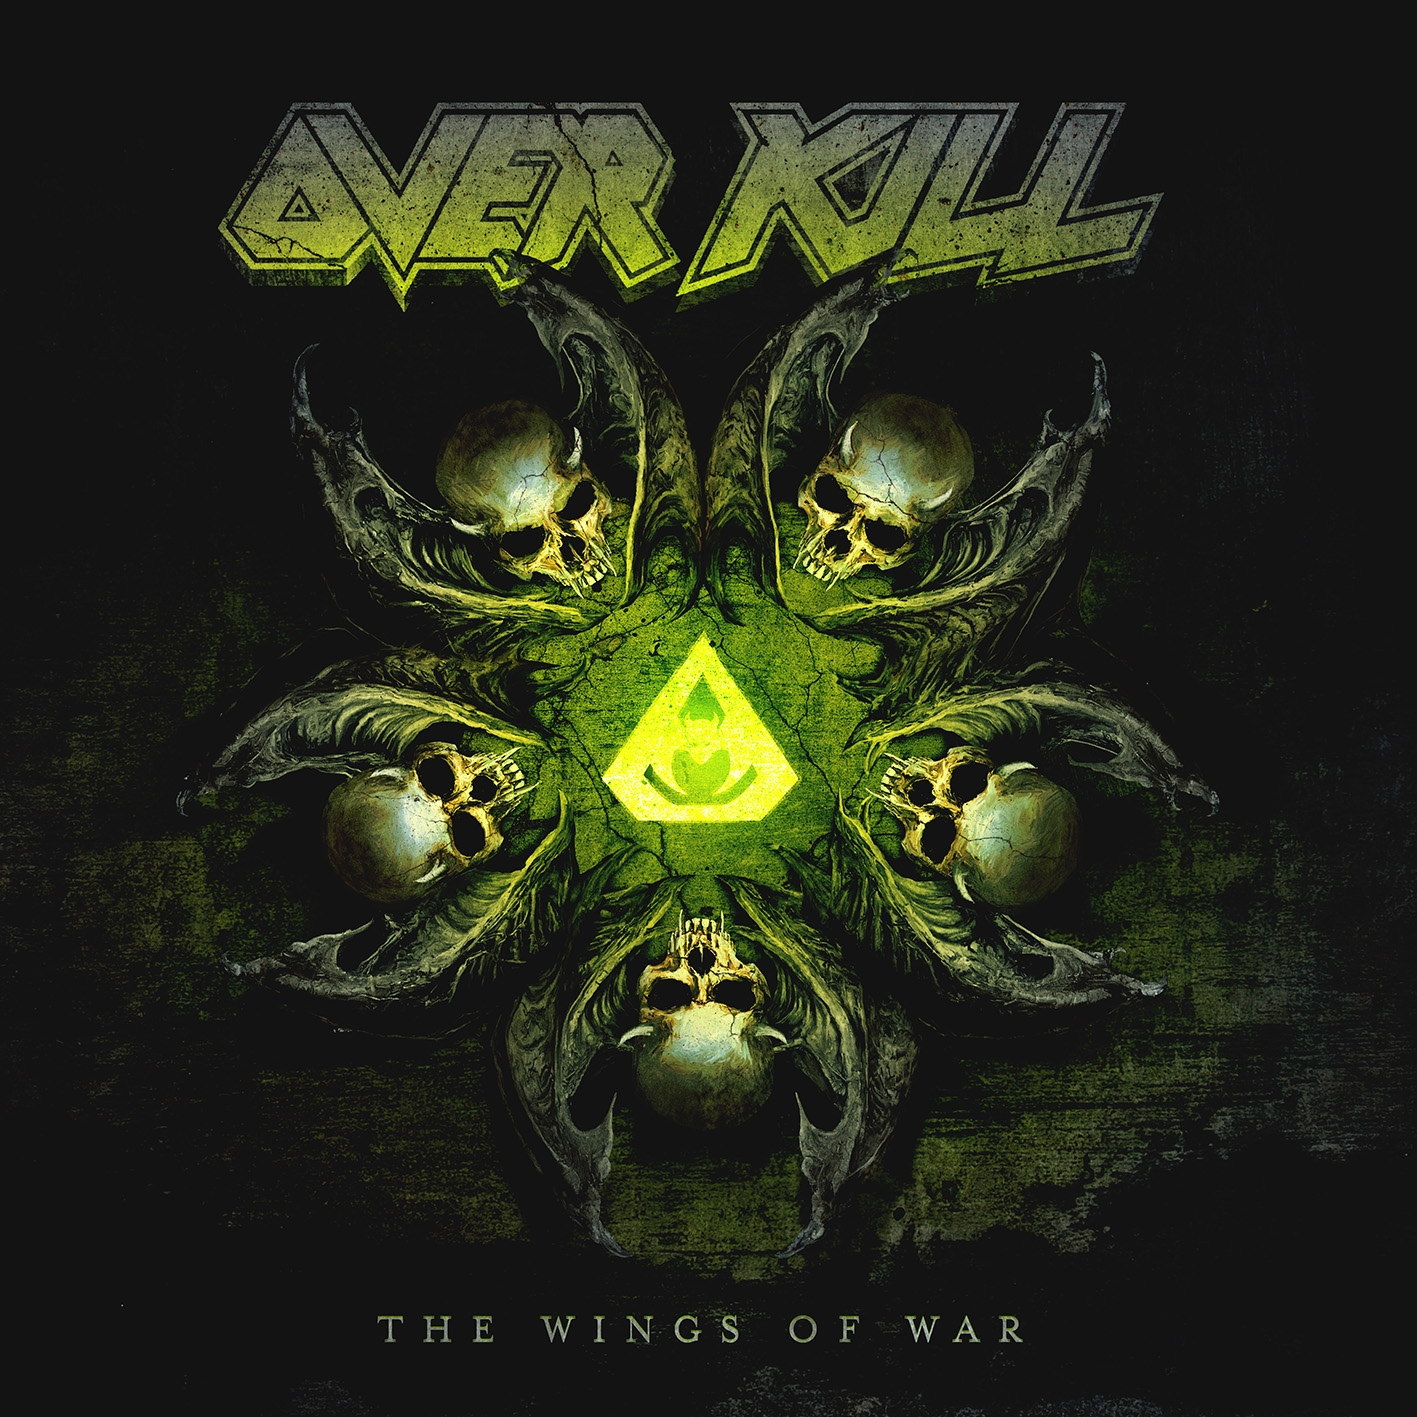 overkill-the-wings-of-war-ewiger-jungbrunnen-album-review